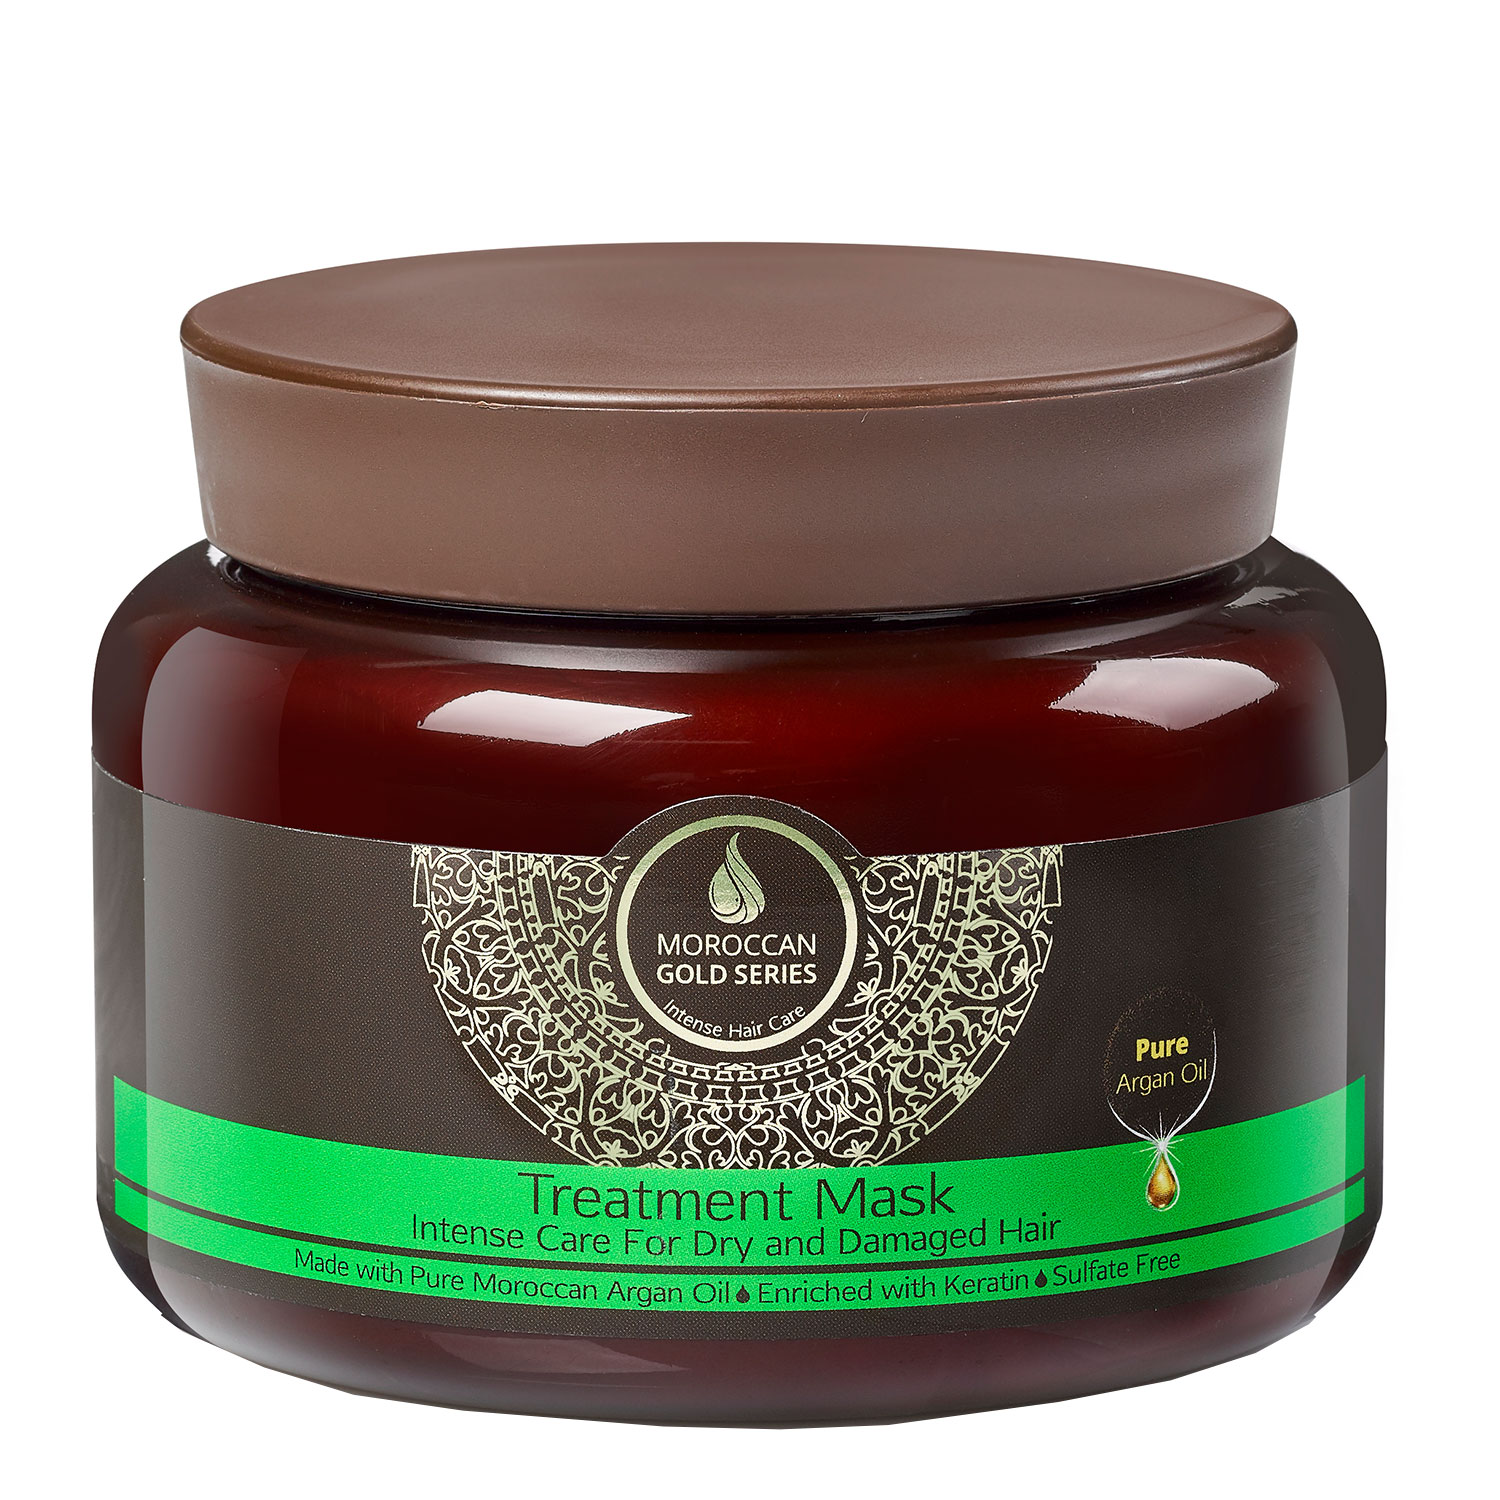 Moroccan Gold Series - Treatment Mask - 250ml